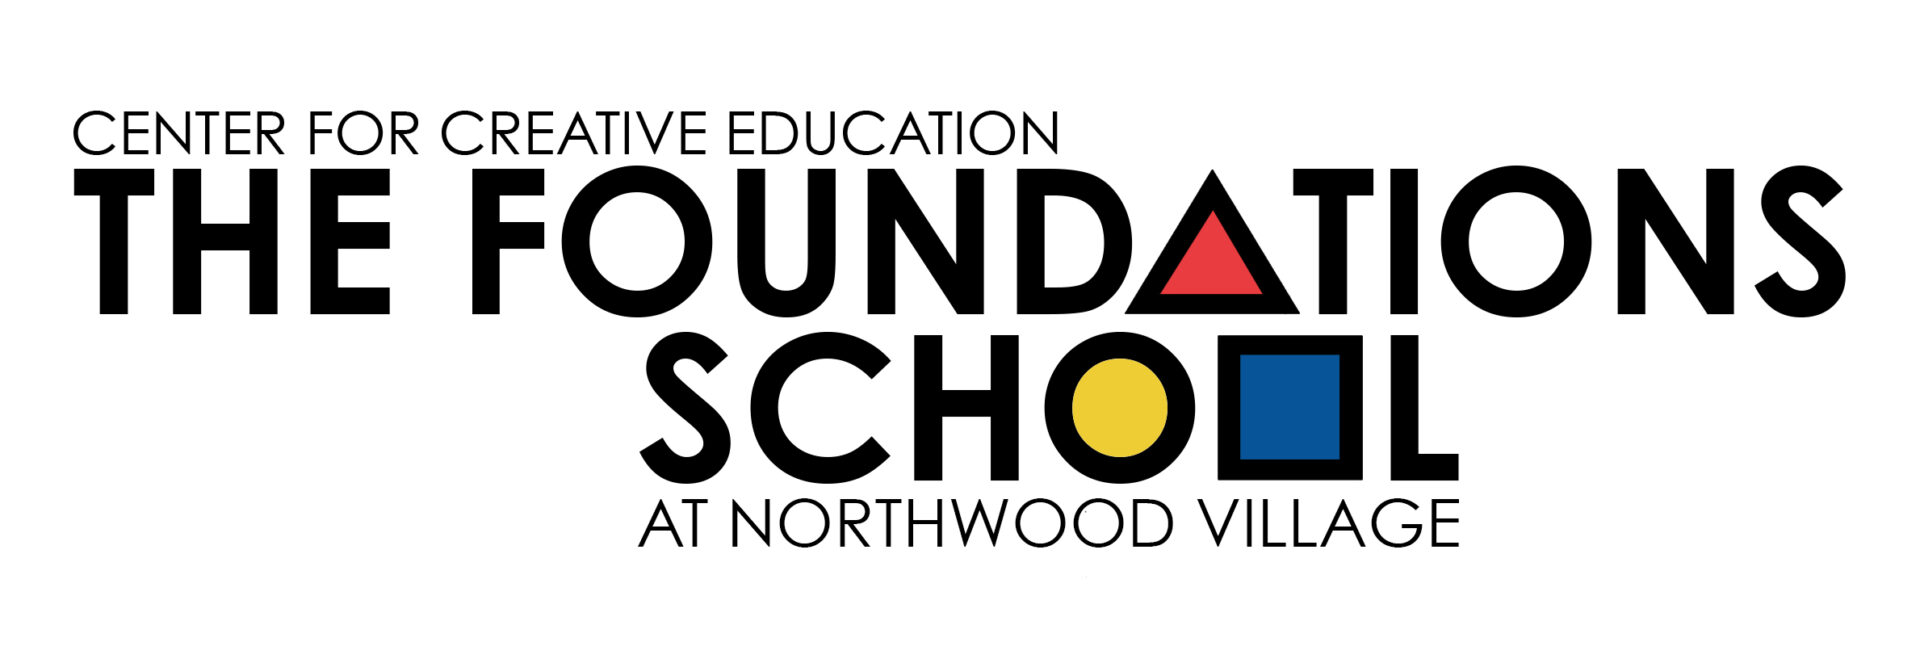 TheFoundationsSchool_Logo_FINAL